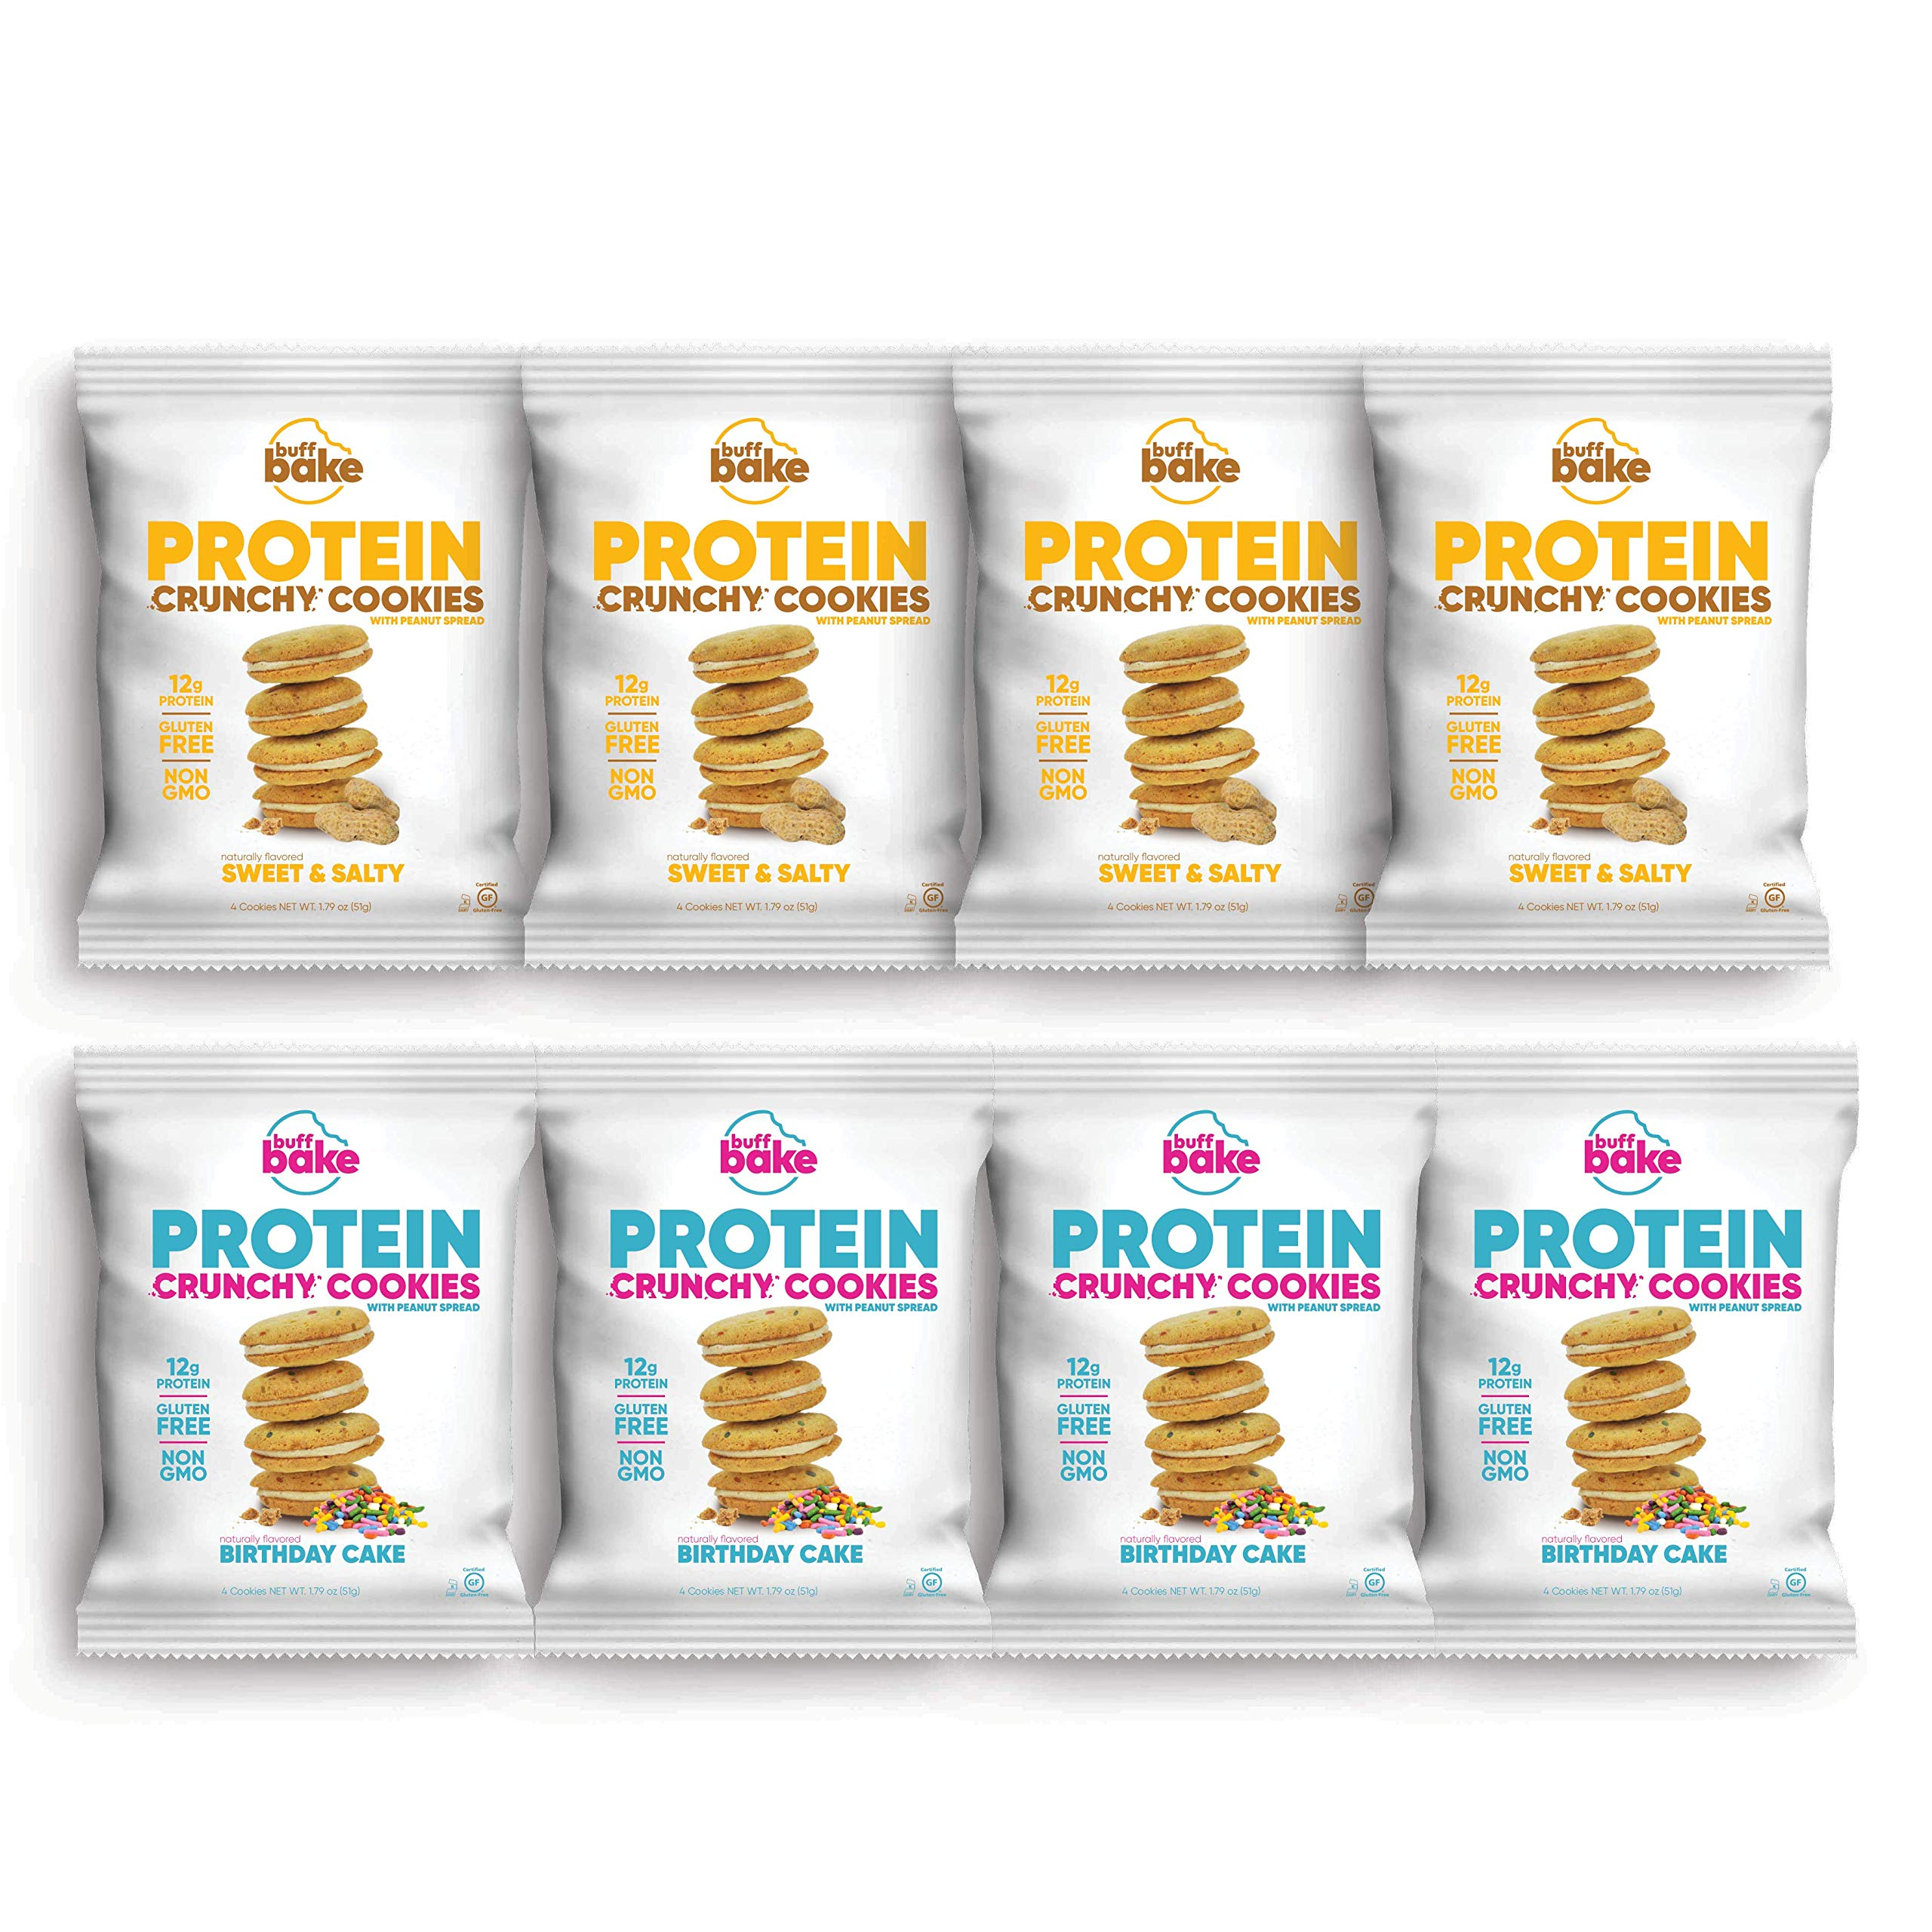 Buff Bake Protein Sandwich Cookie | New Variety Pack | Crunchy | Gluten Free | Non-GMO Ingredients | 12 Grams of Hormone-Free Whey Protein | (8 Count, 1.79 Ounces)